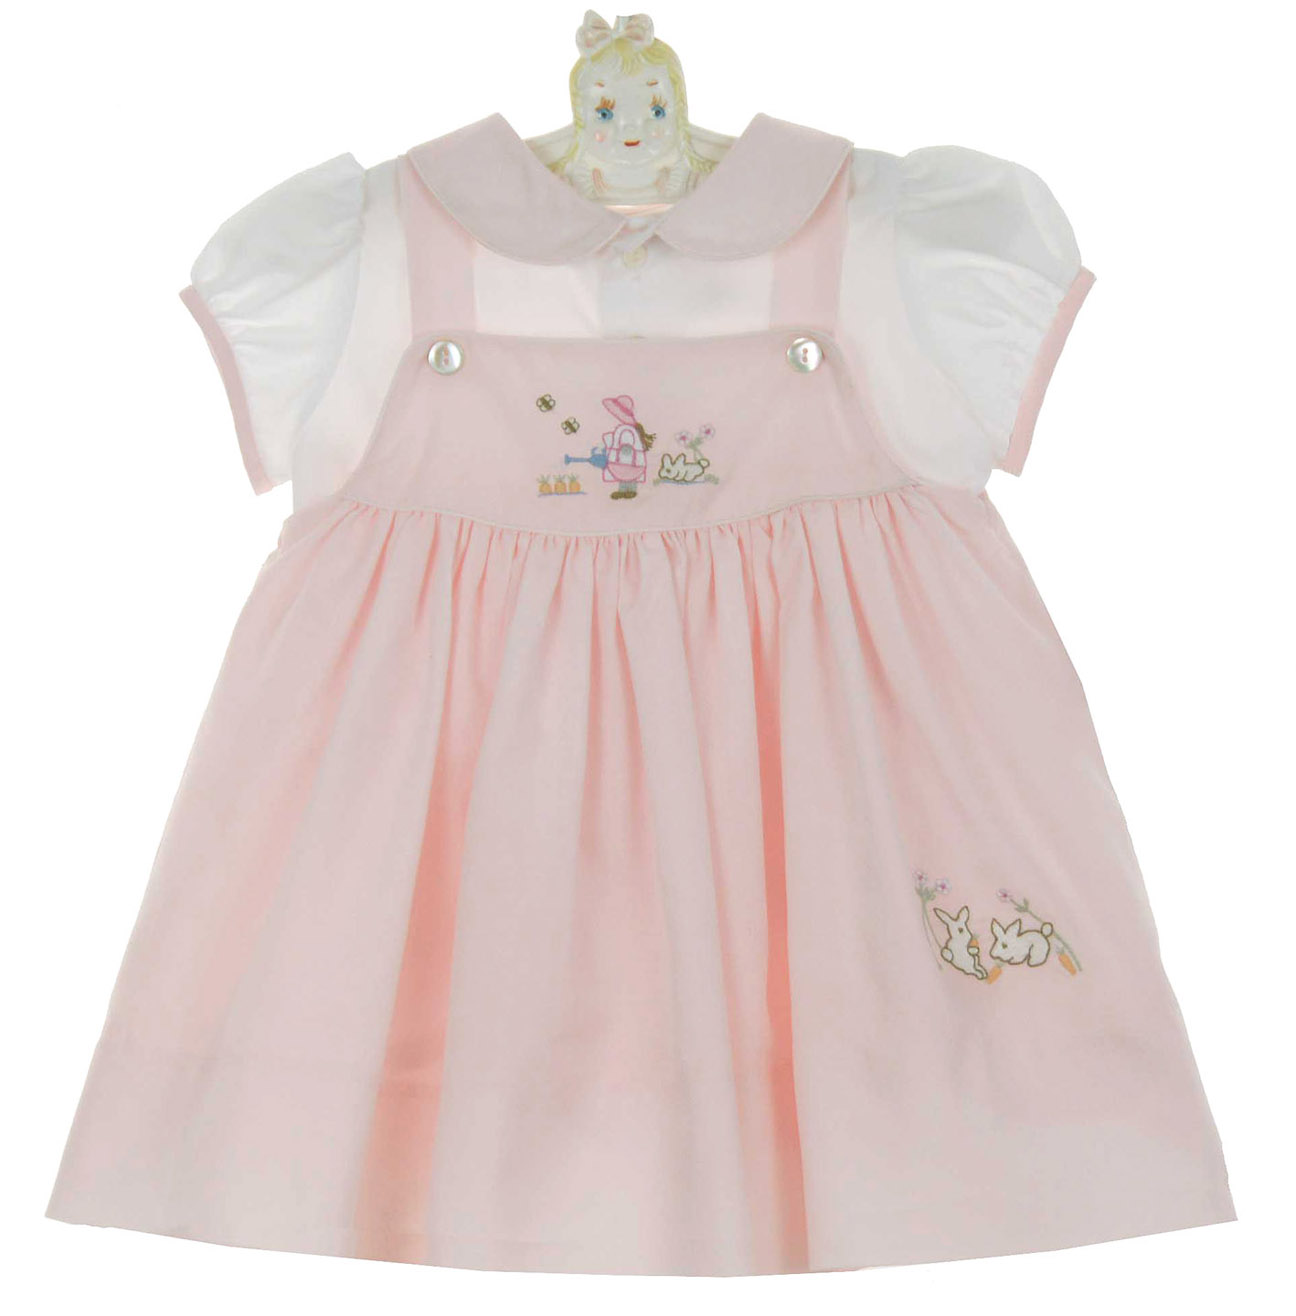 NEW Sarah Louise Pink Pinafore and Blouse Set with Bunny and Flower  Embroidery 76cb5fc54